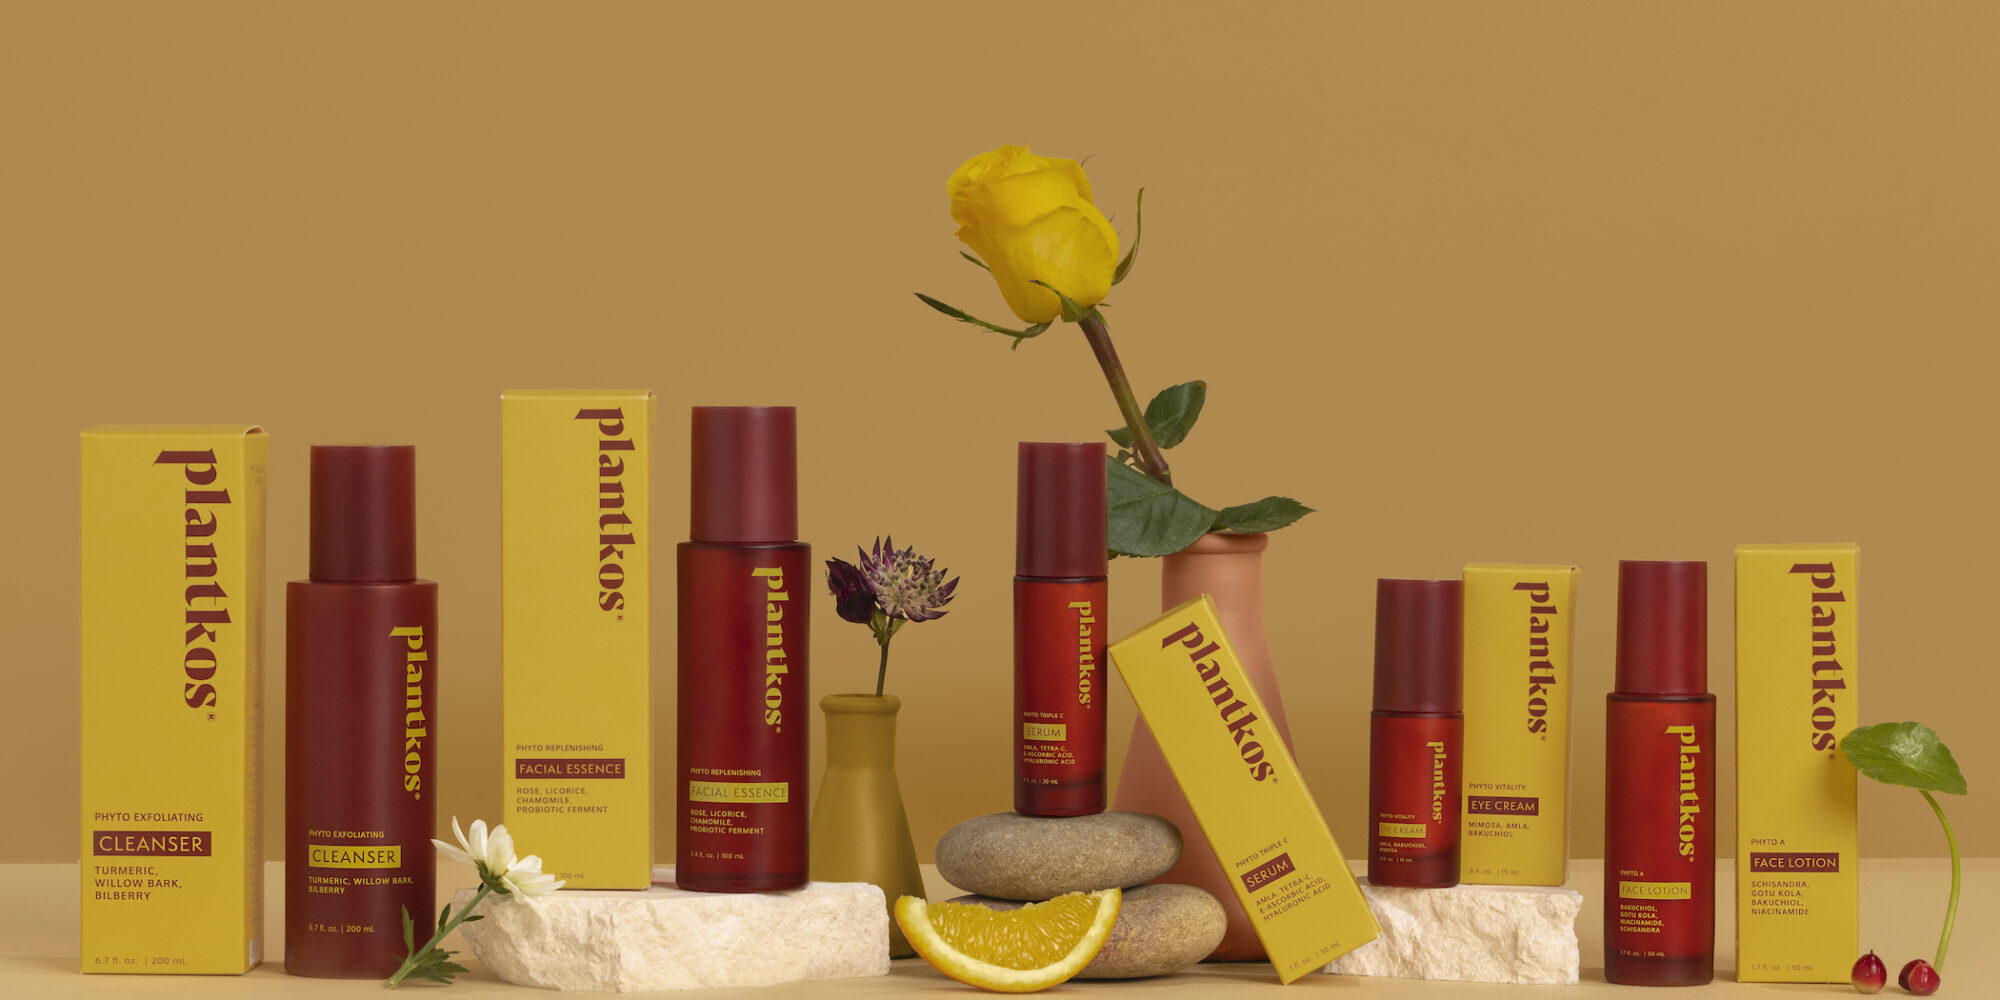 New Melanated Skin Specialist Plantkos Launches In DTC, Enters The Detox Market's The Launchpad Program